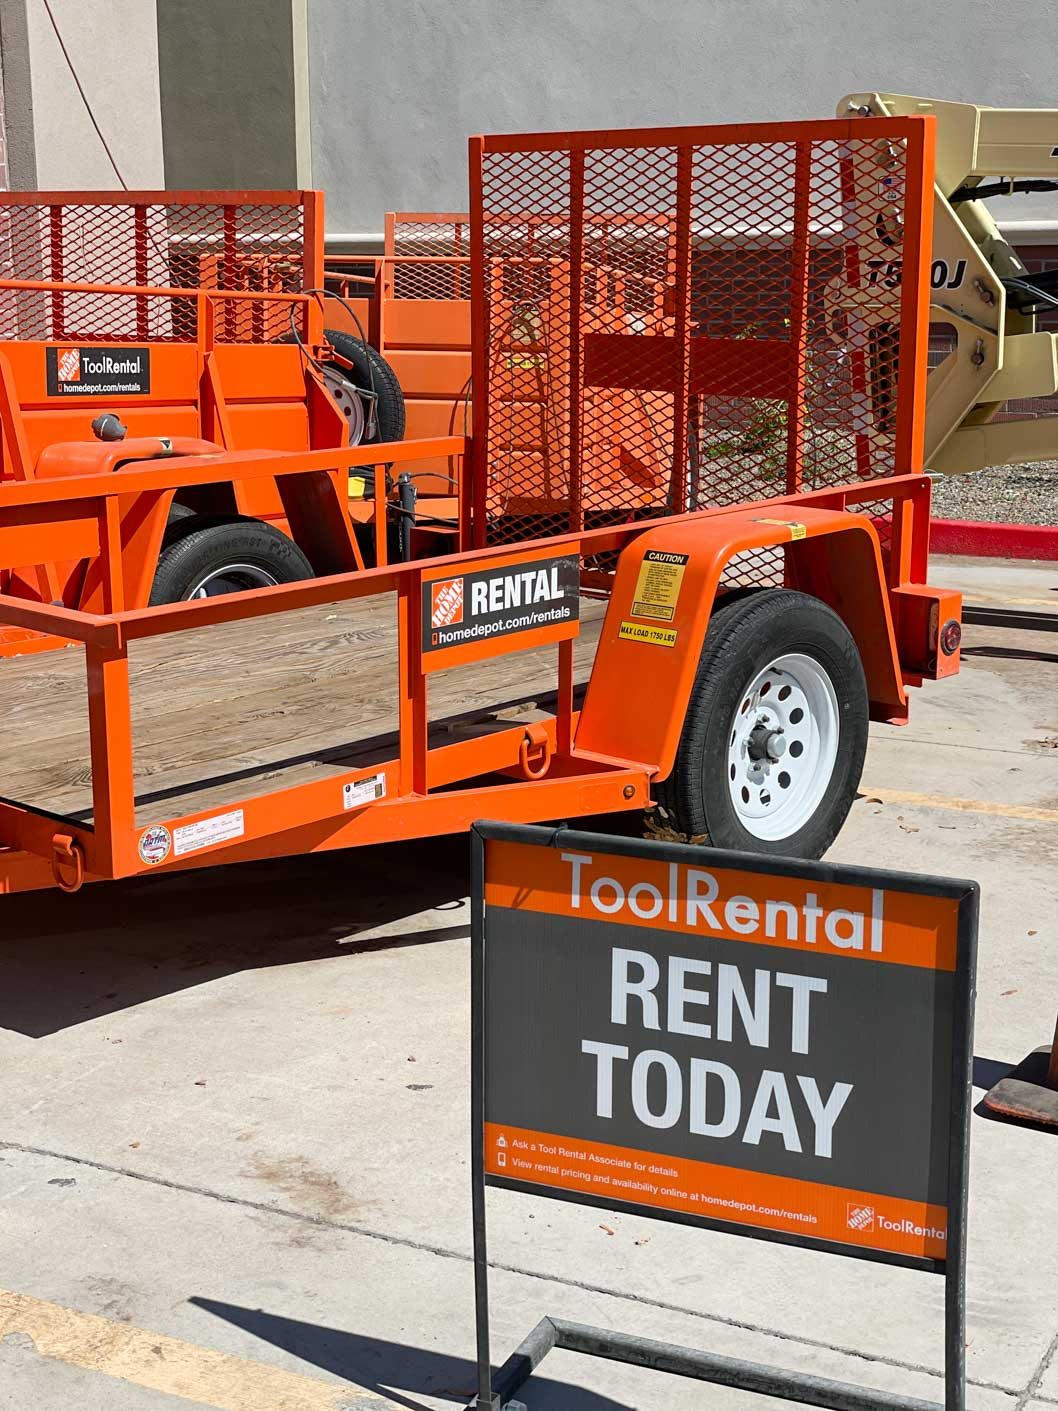 a picture showing an orange trailer